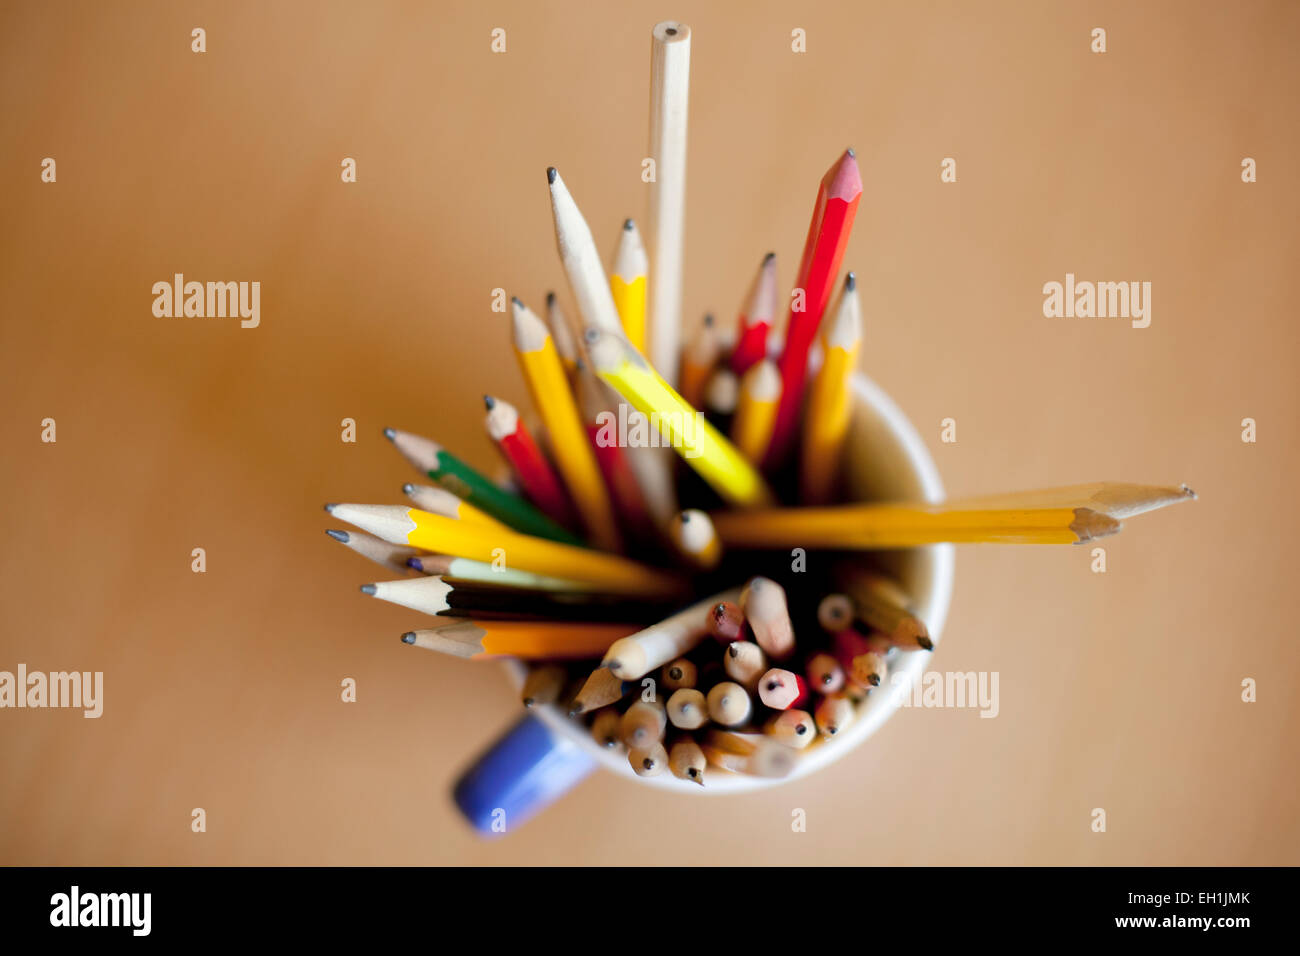 Directly above shot of pencils in desk organizer on table - Stock Image